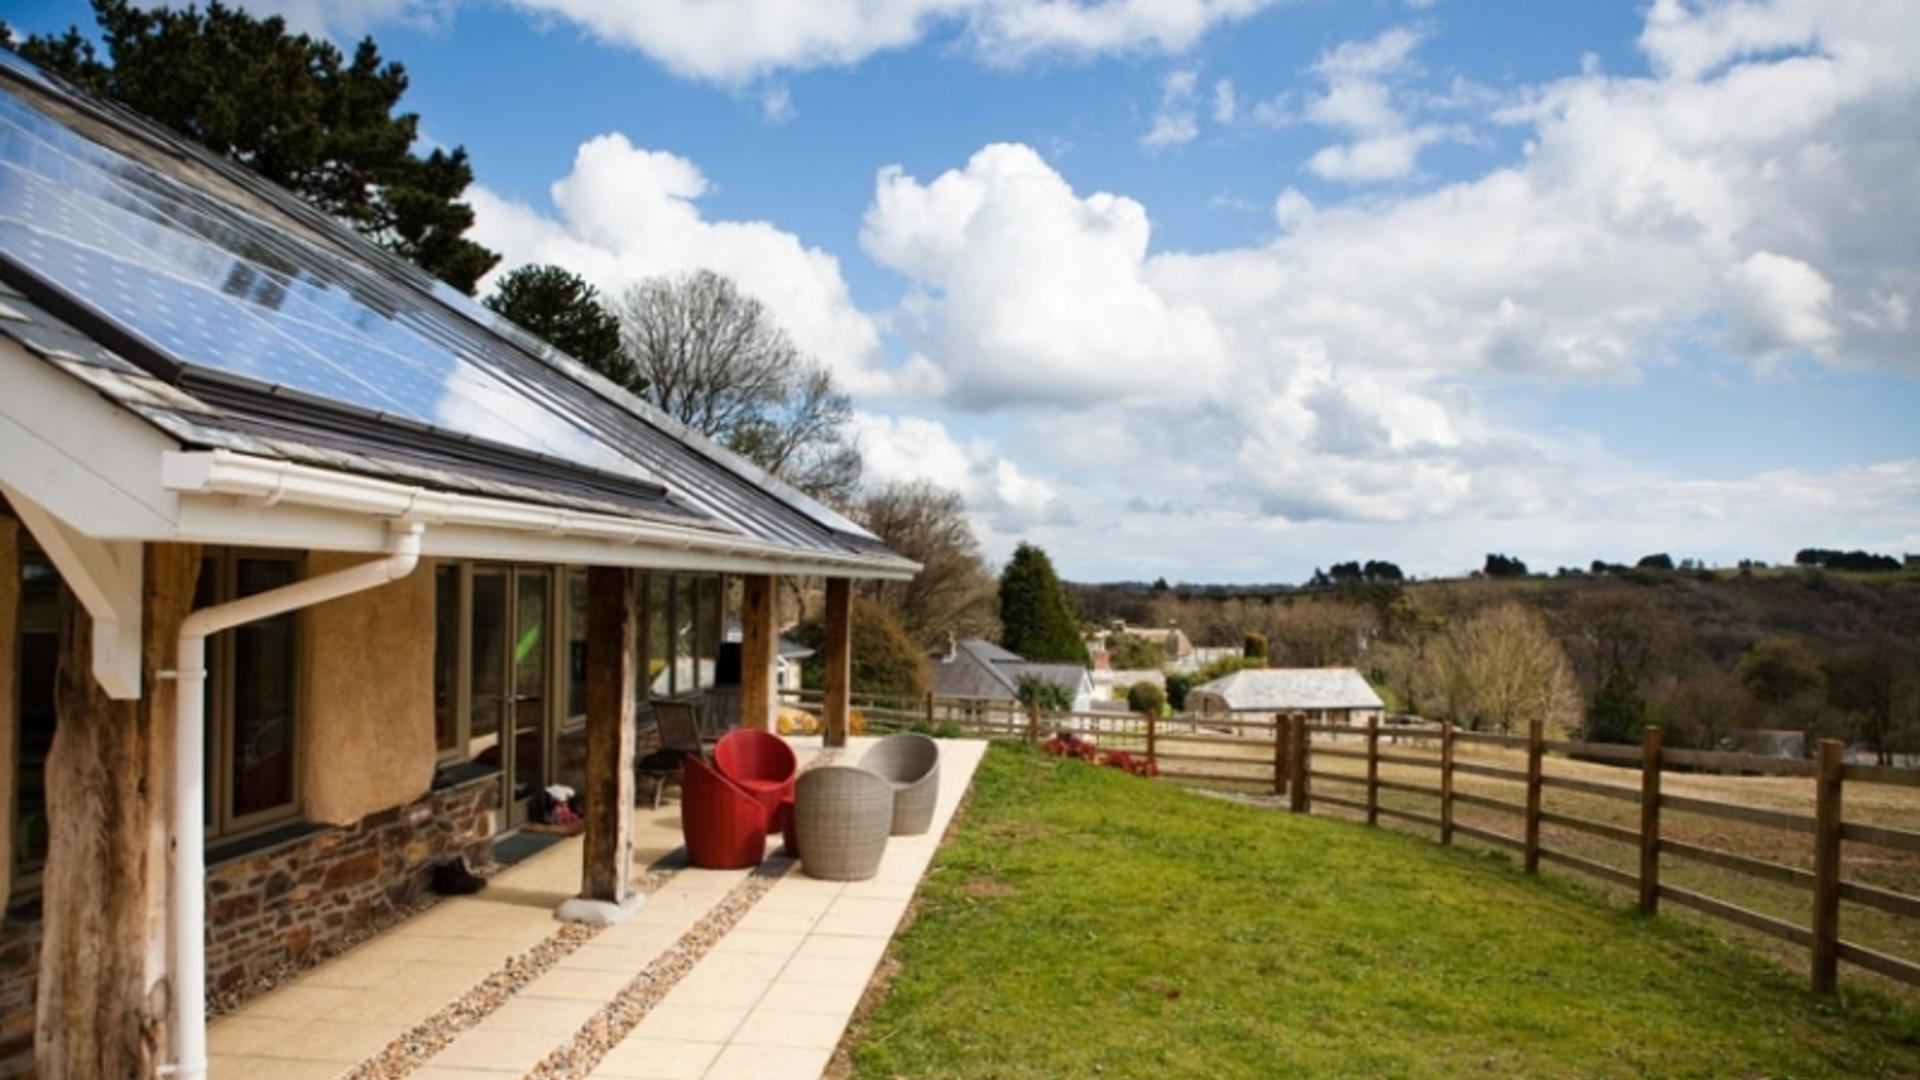 4 Bedroom Eco Cottage in Cornwall, United Kingdom